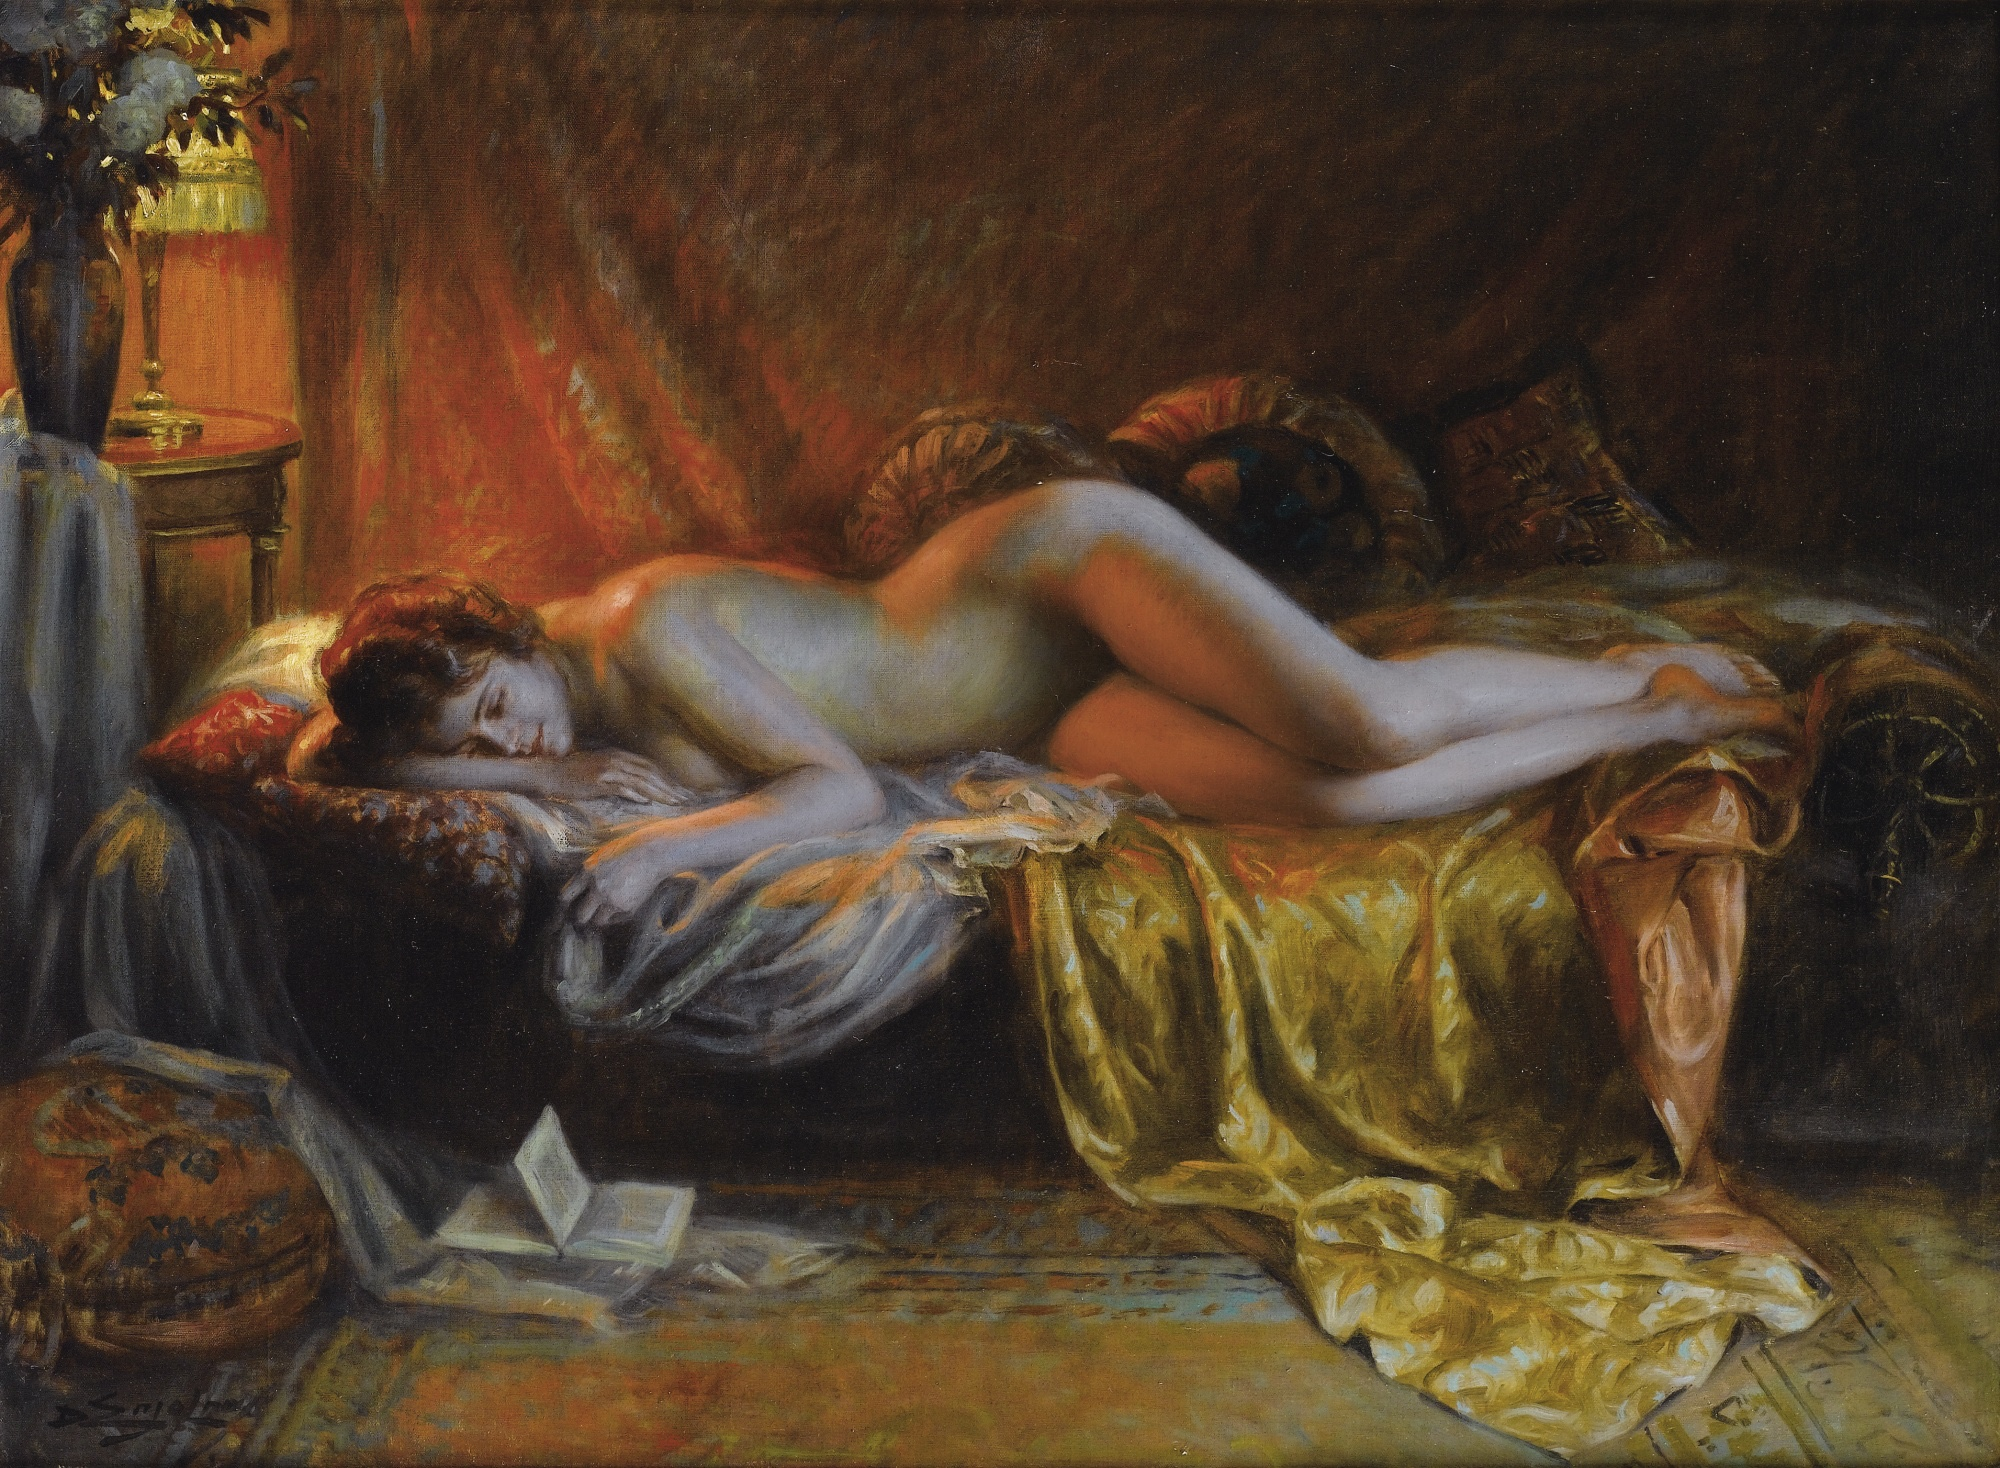 Just Finished Reading a Novel (c. 1918) - Delphin Enjolras